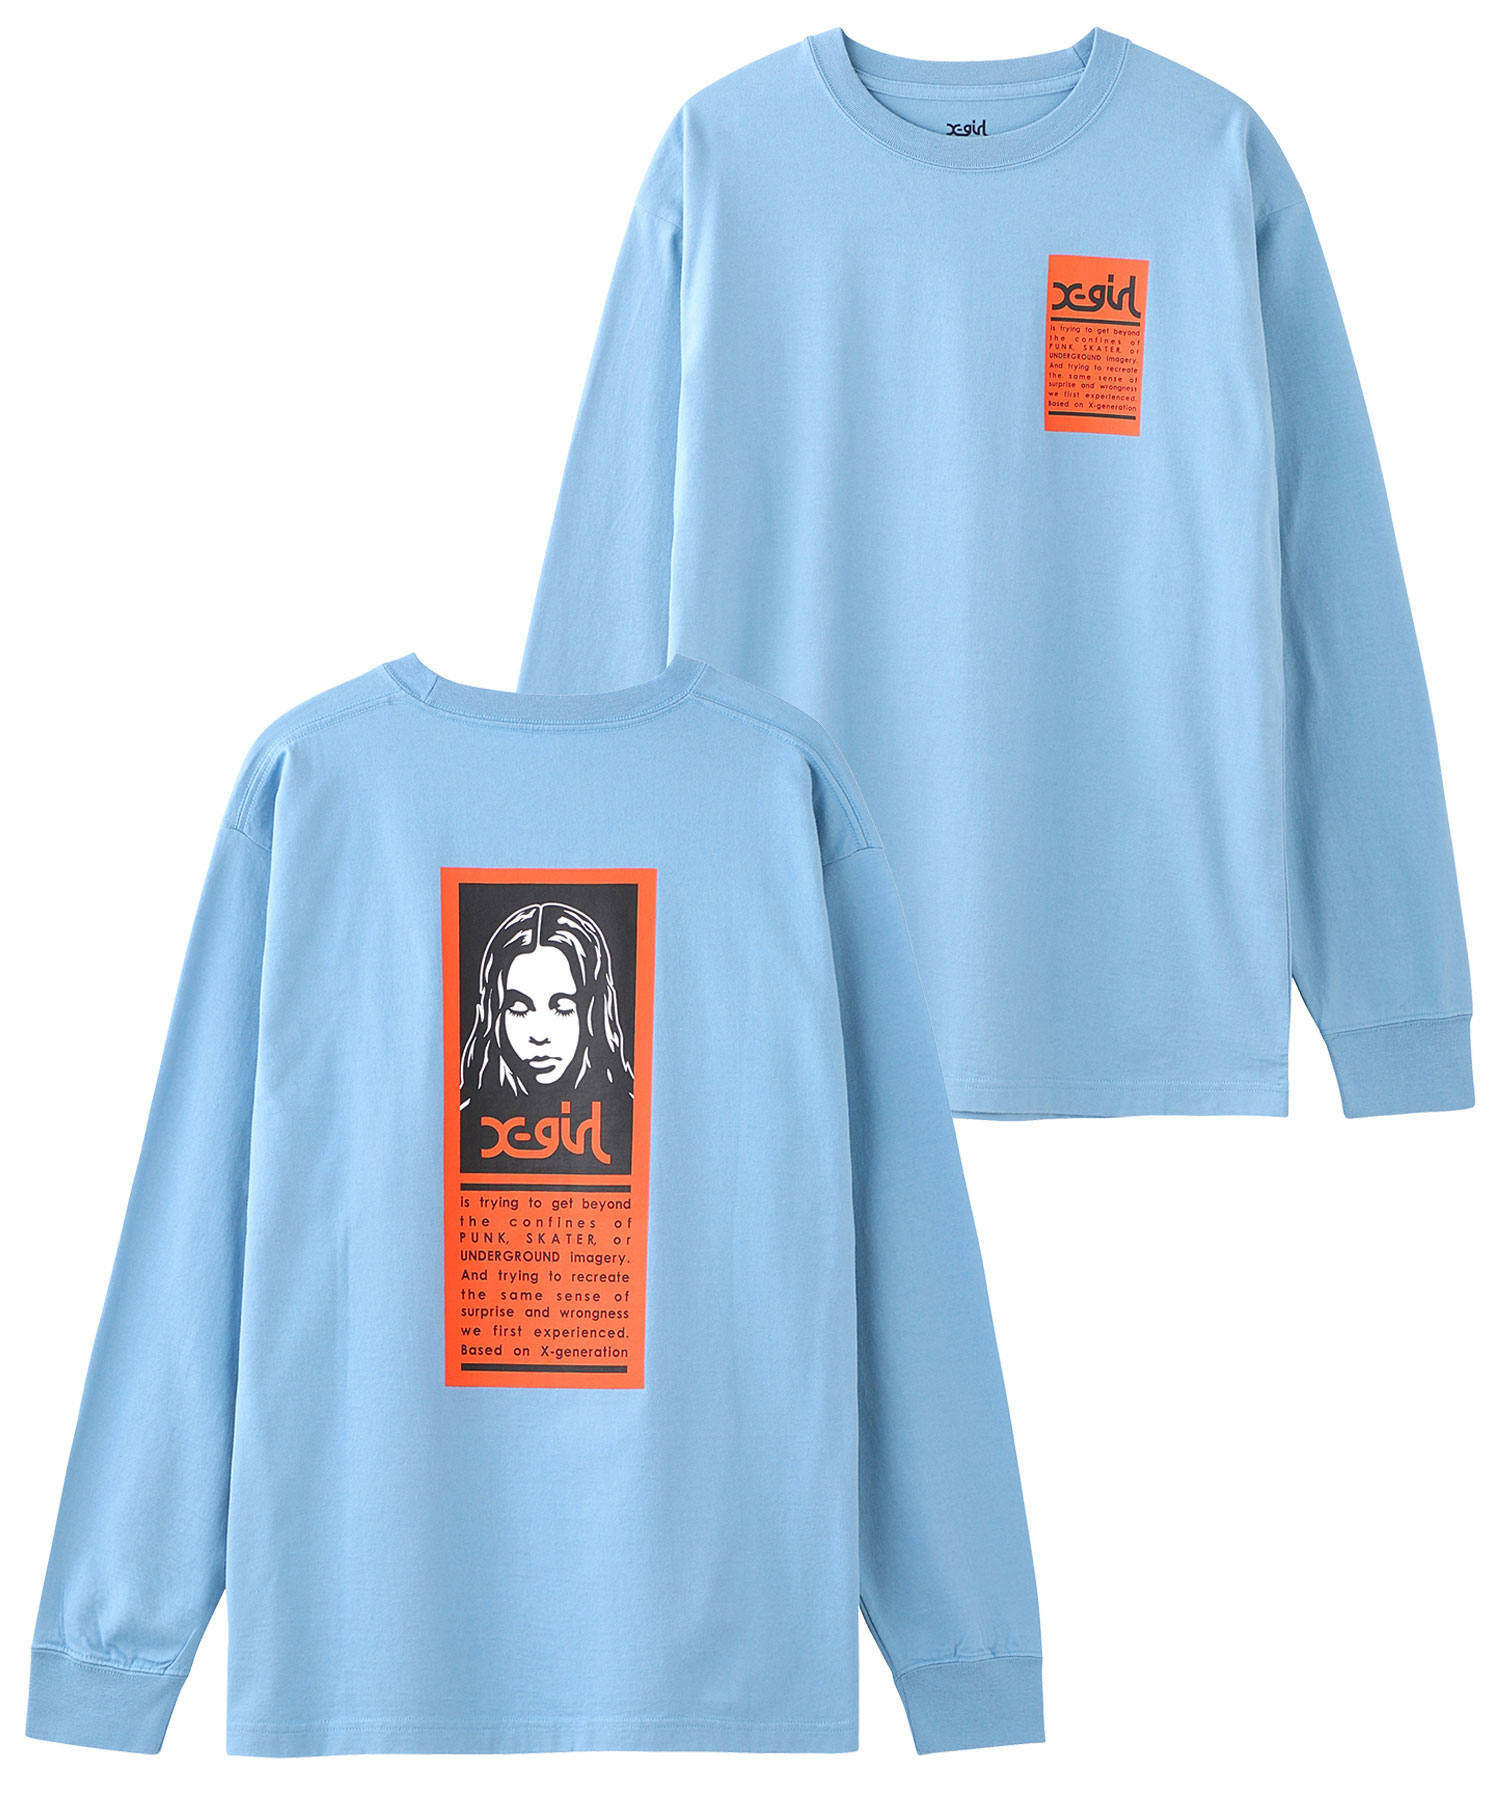 X-girl(エックスガール)通販|WORDS FACE L/S TEE(ライトブルー)